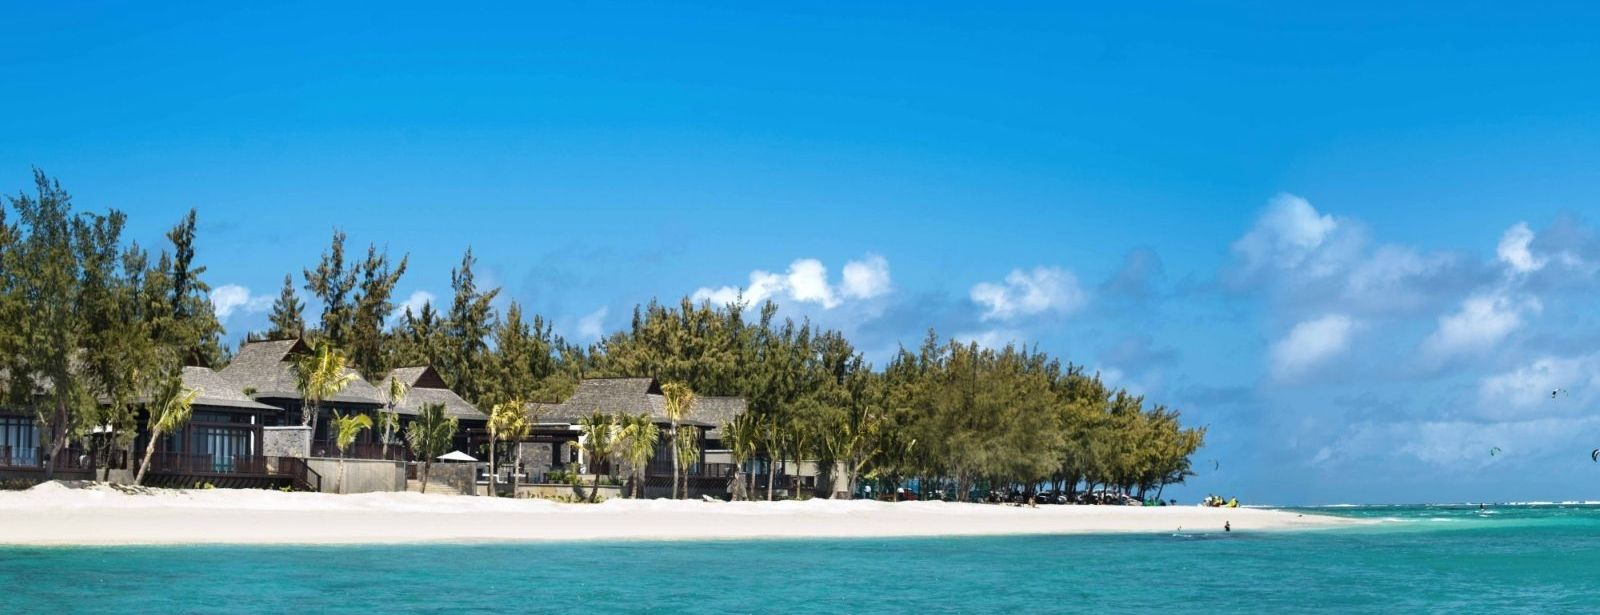 St. Regis Mauritius Private Villa view from the ocean